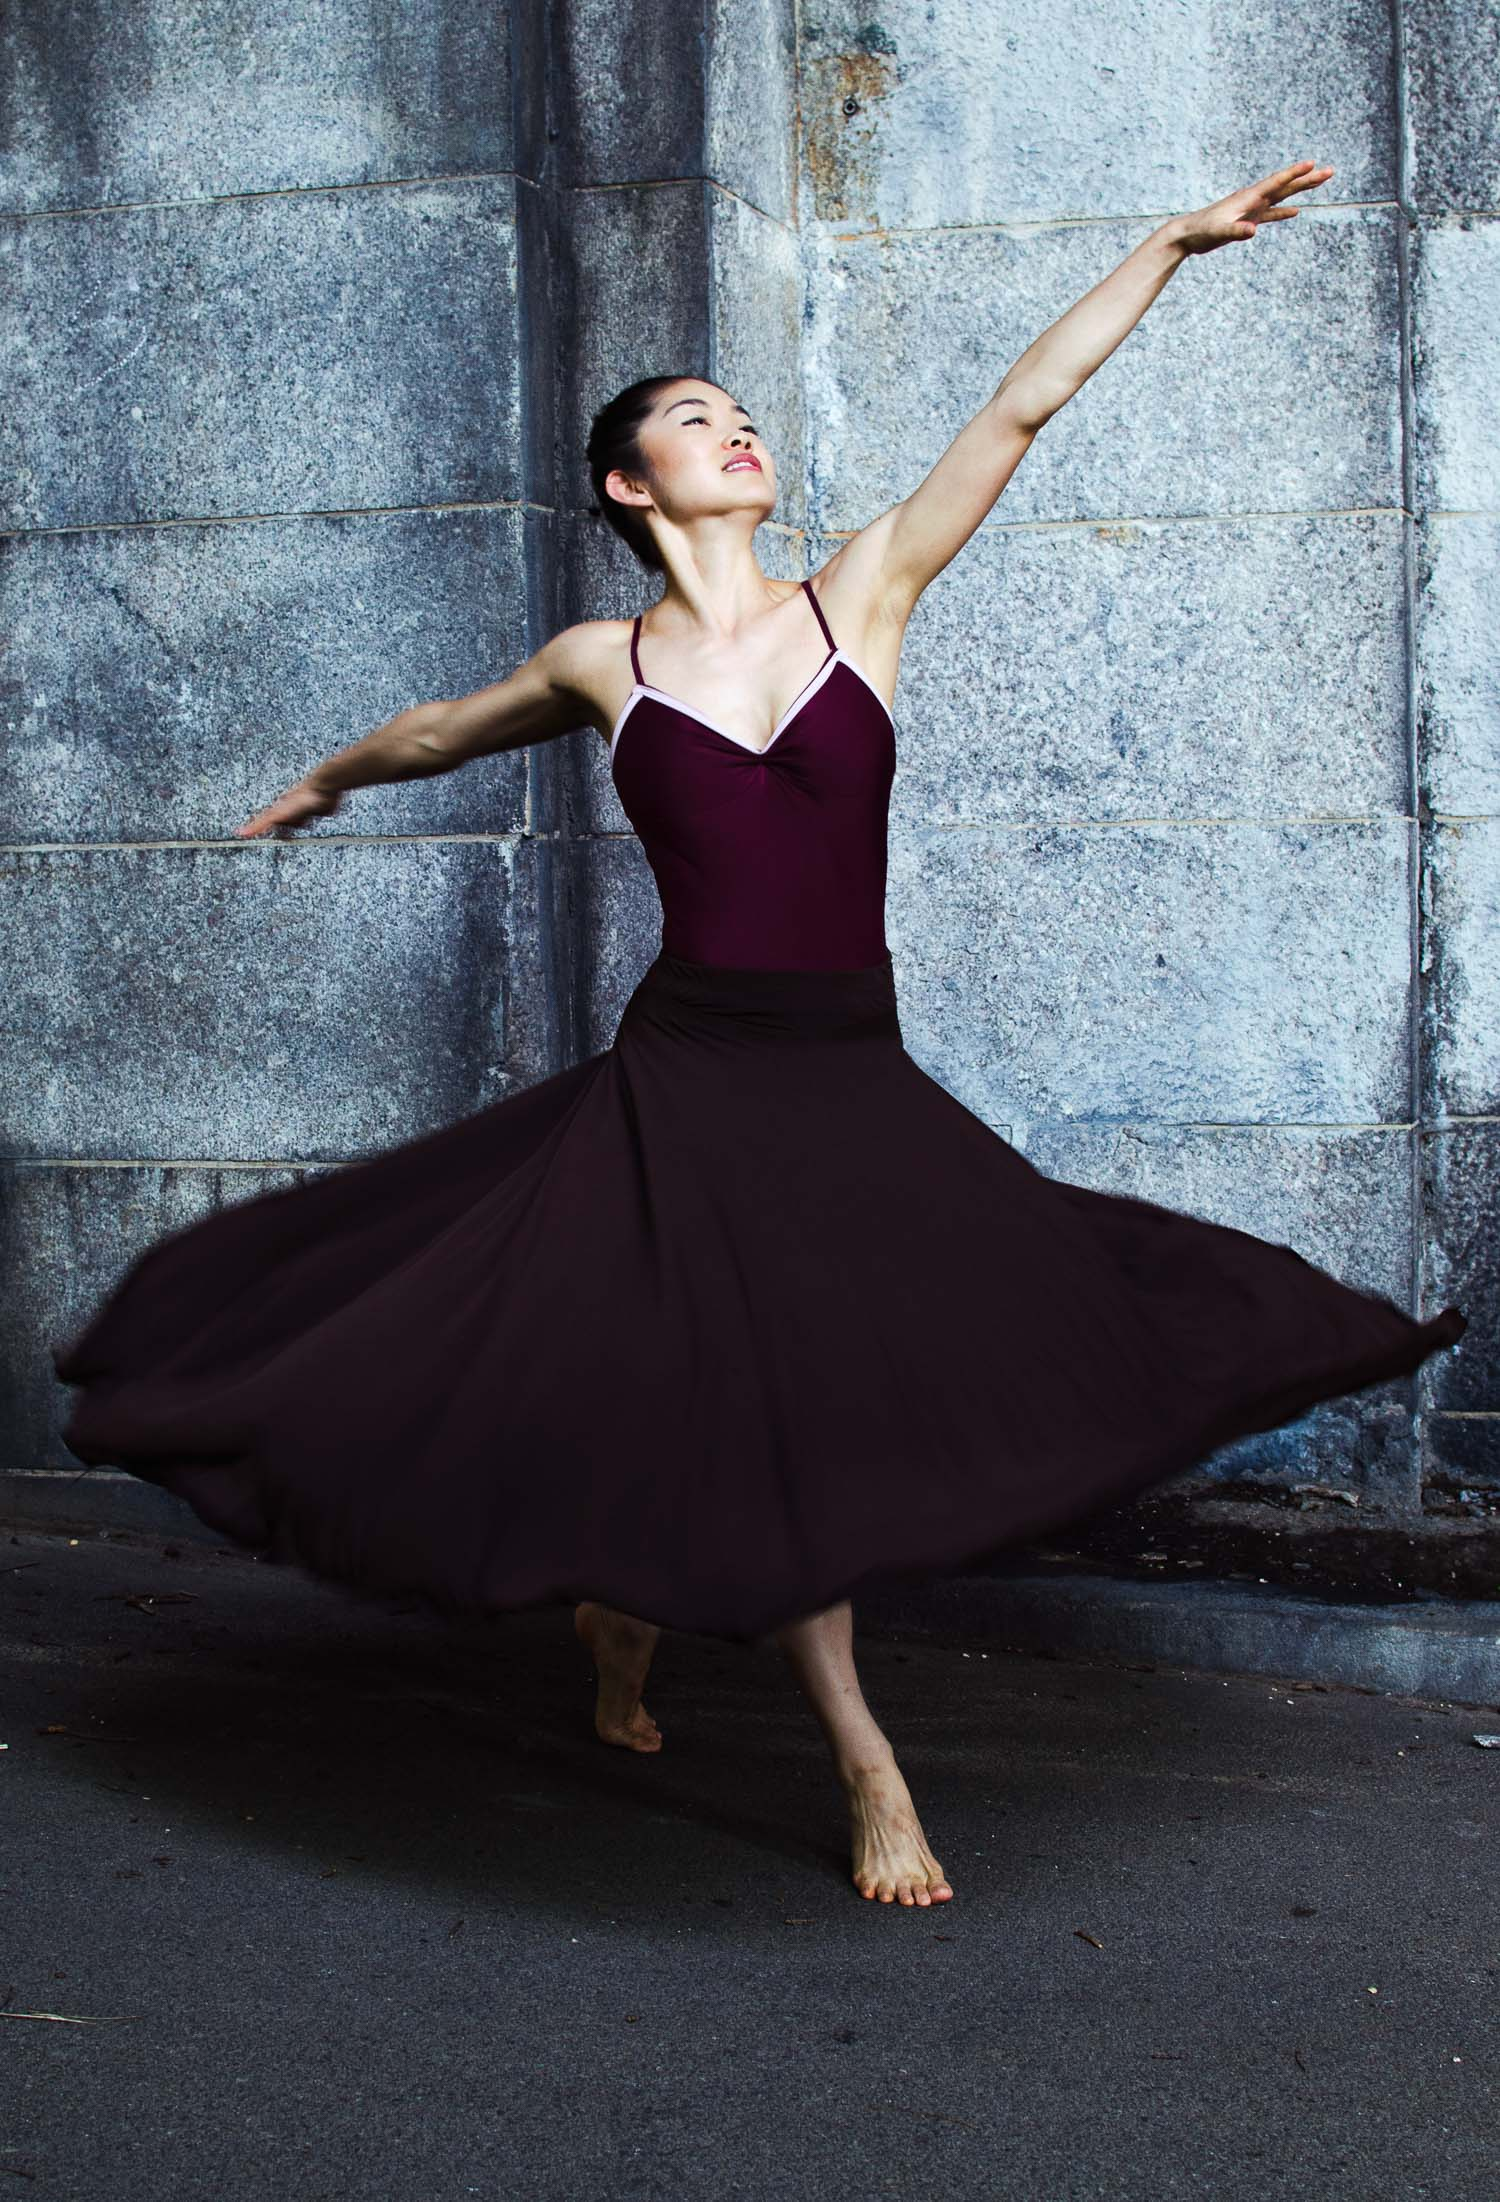 Grace Song, dancer and choreographer